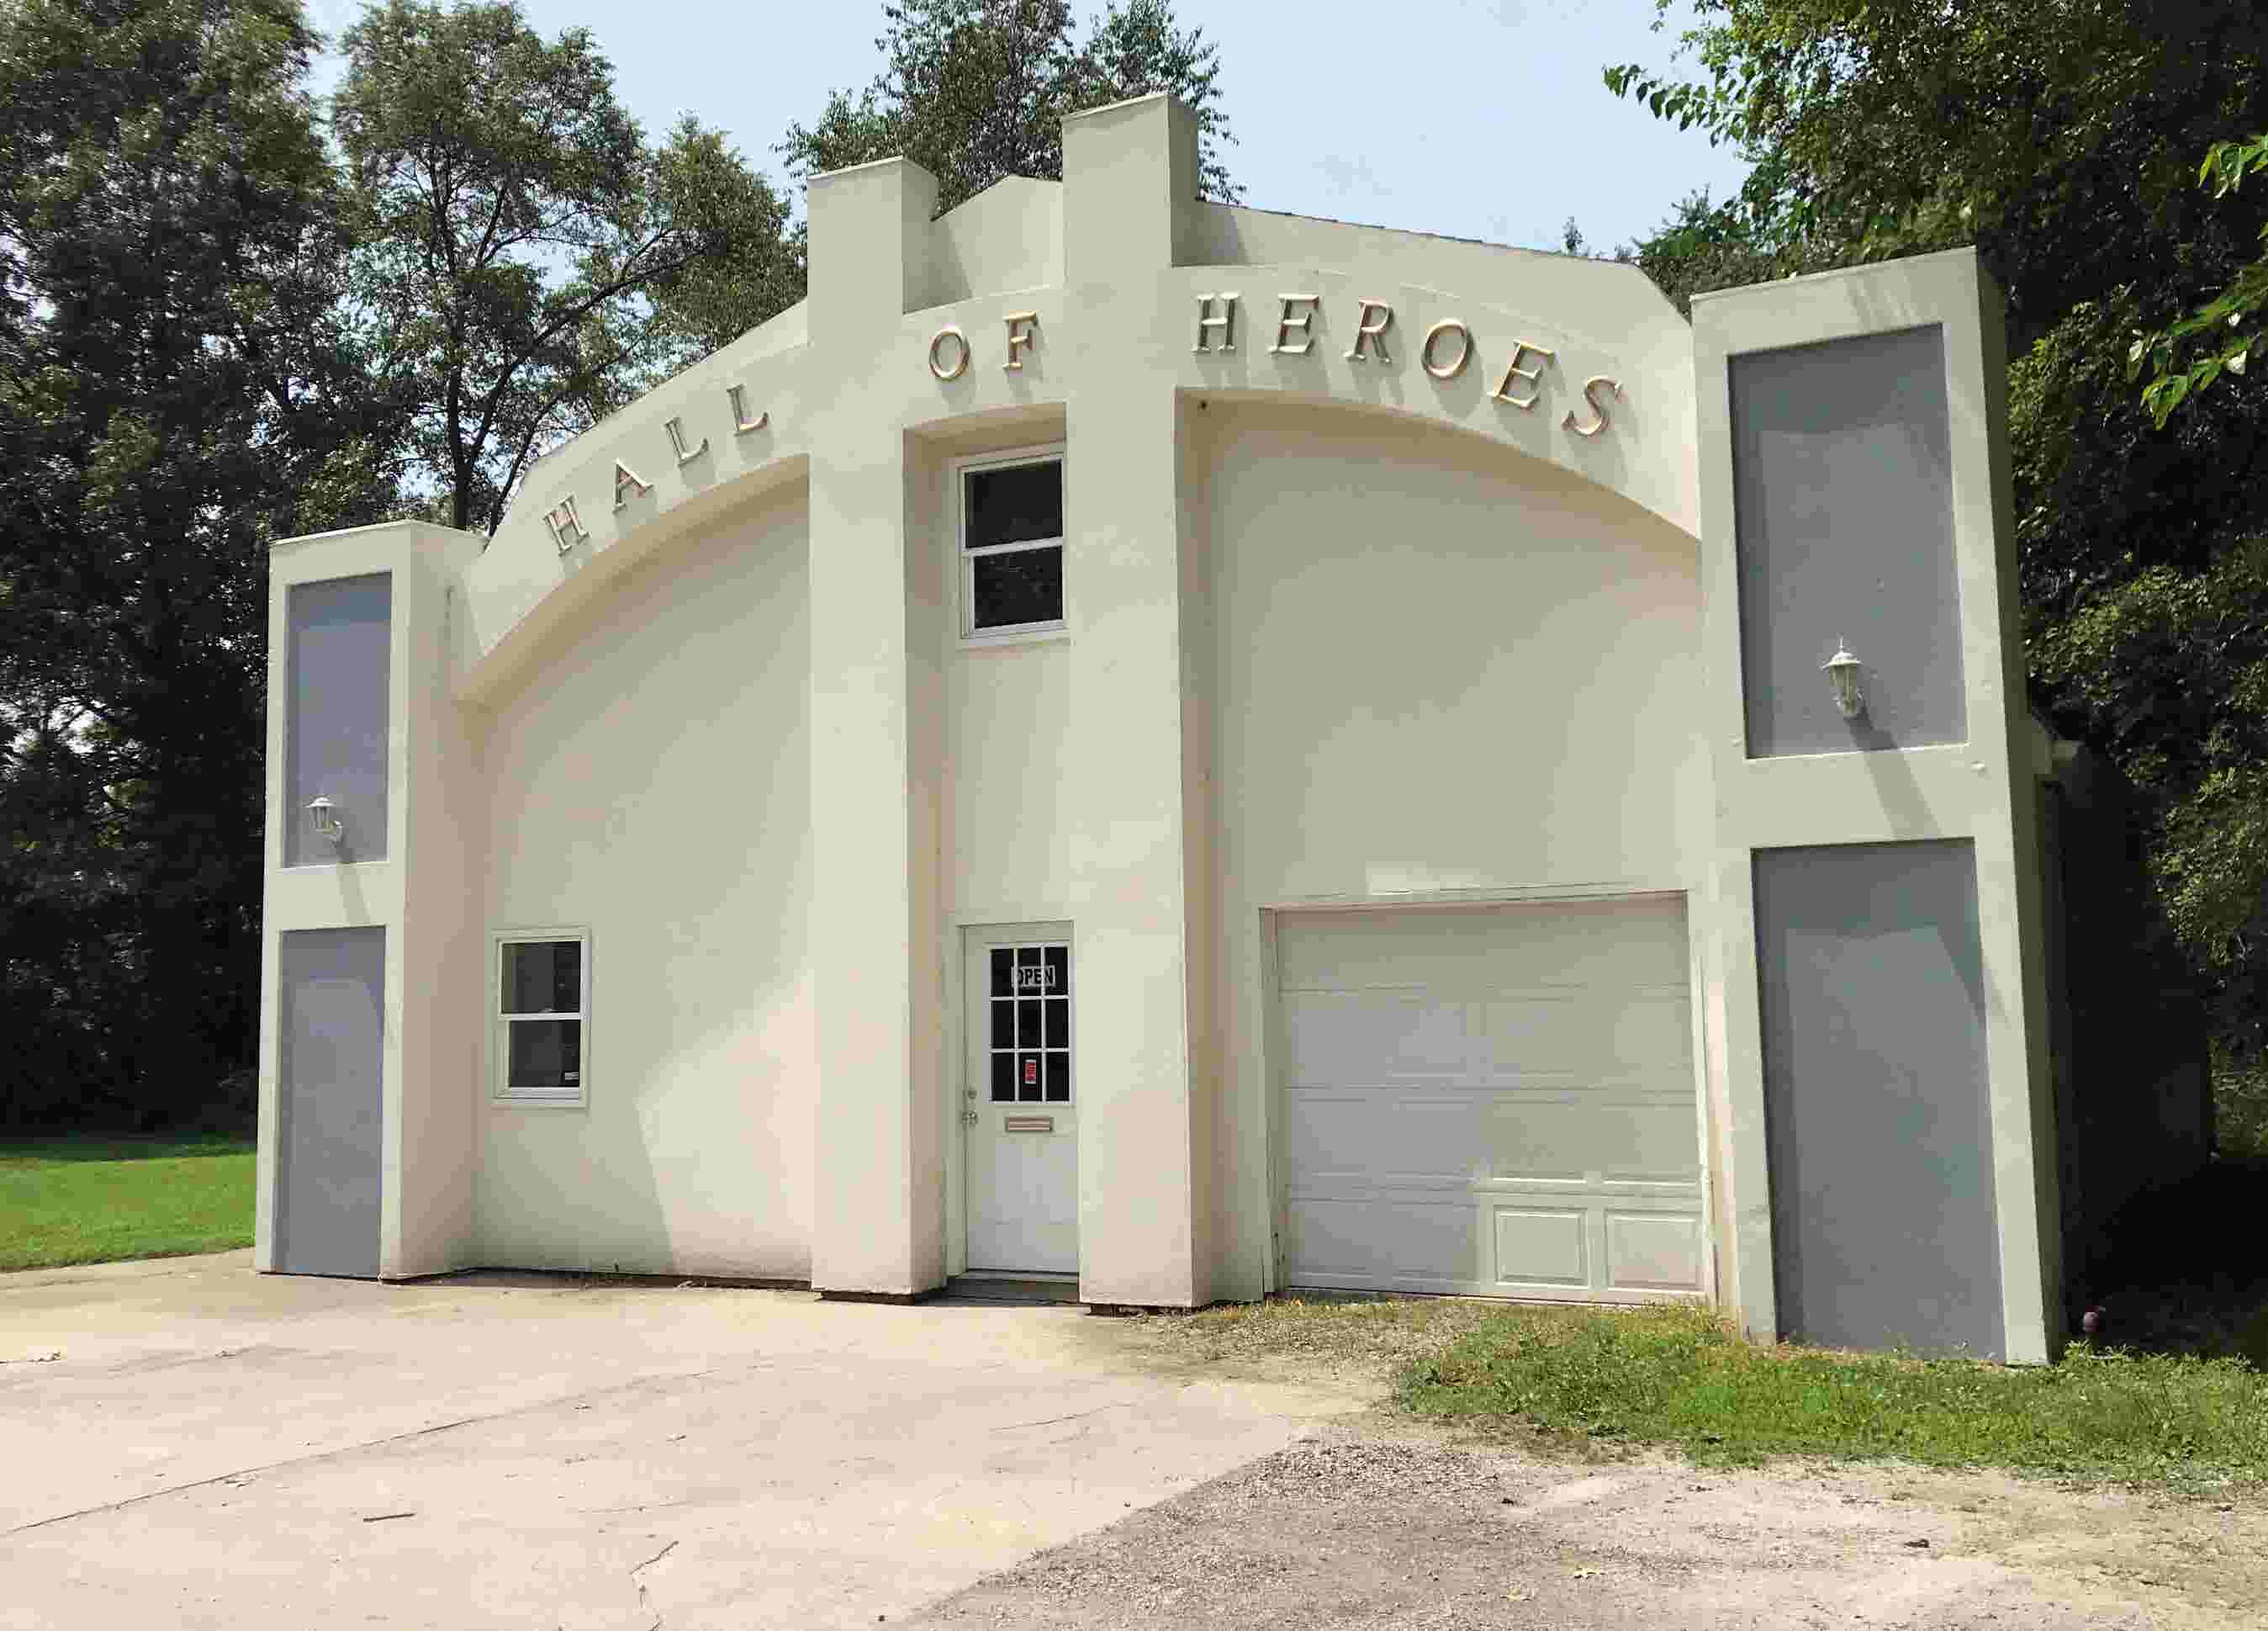 The world's only superhero museum sits (but not for long) in an Indiana backyard